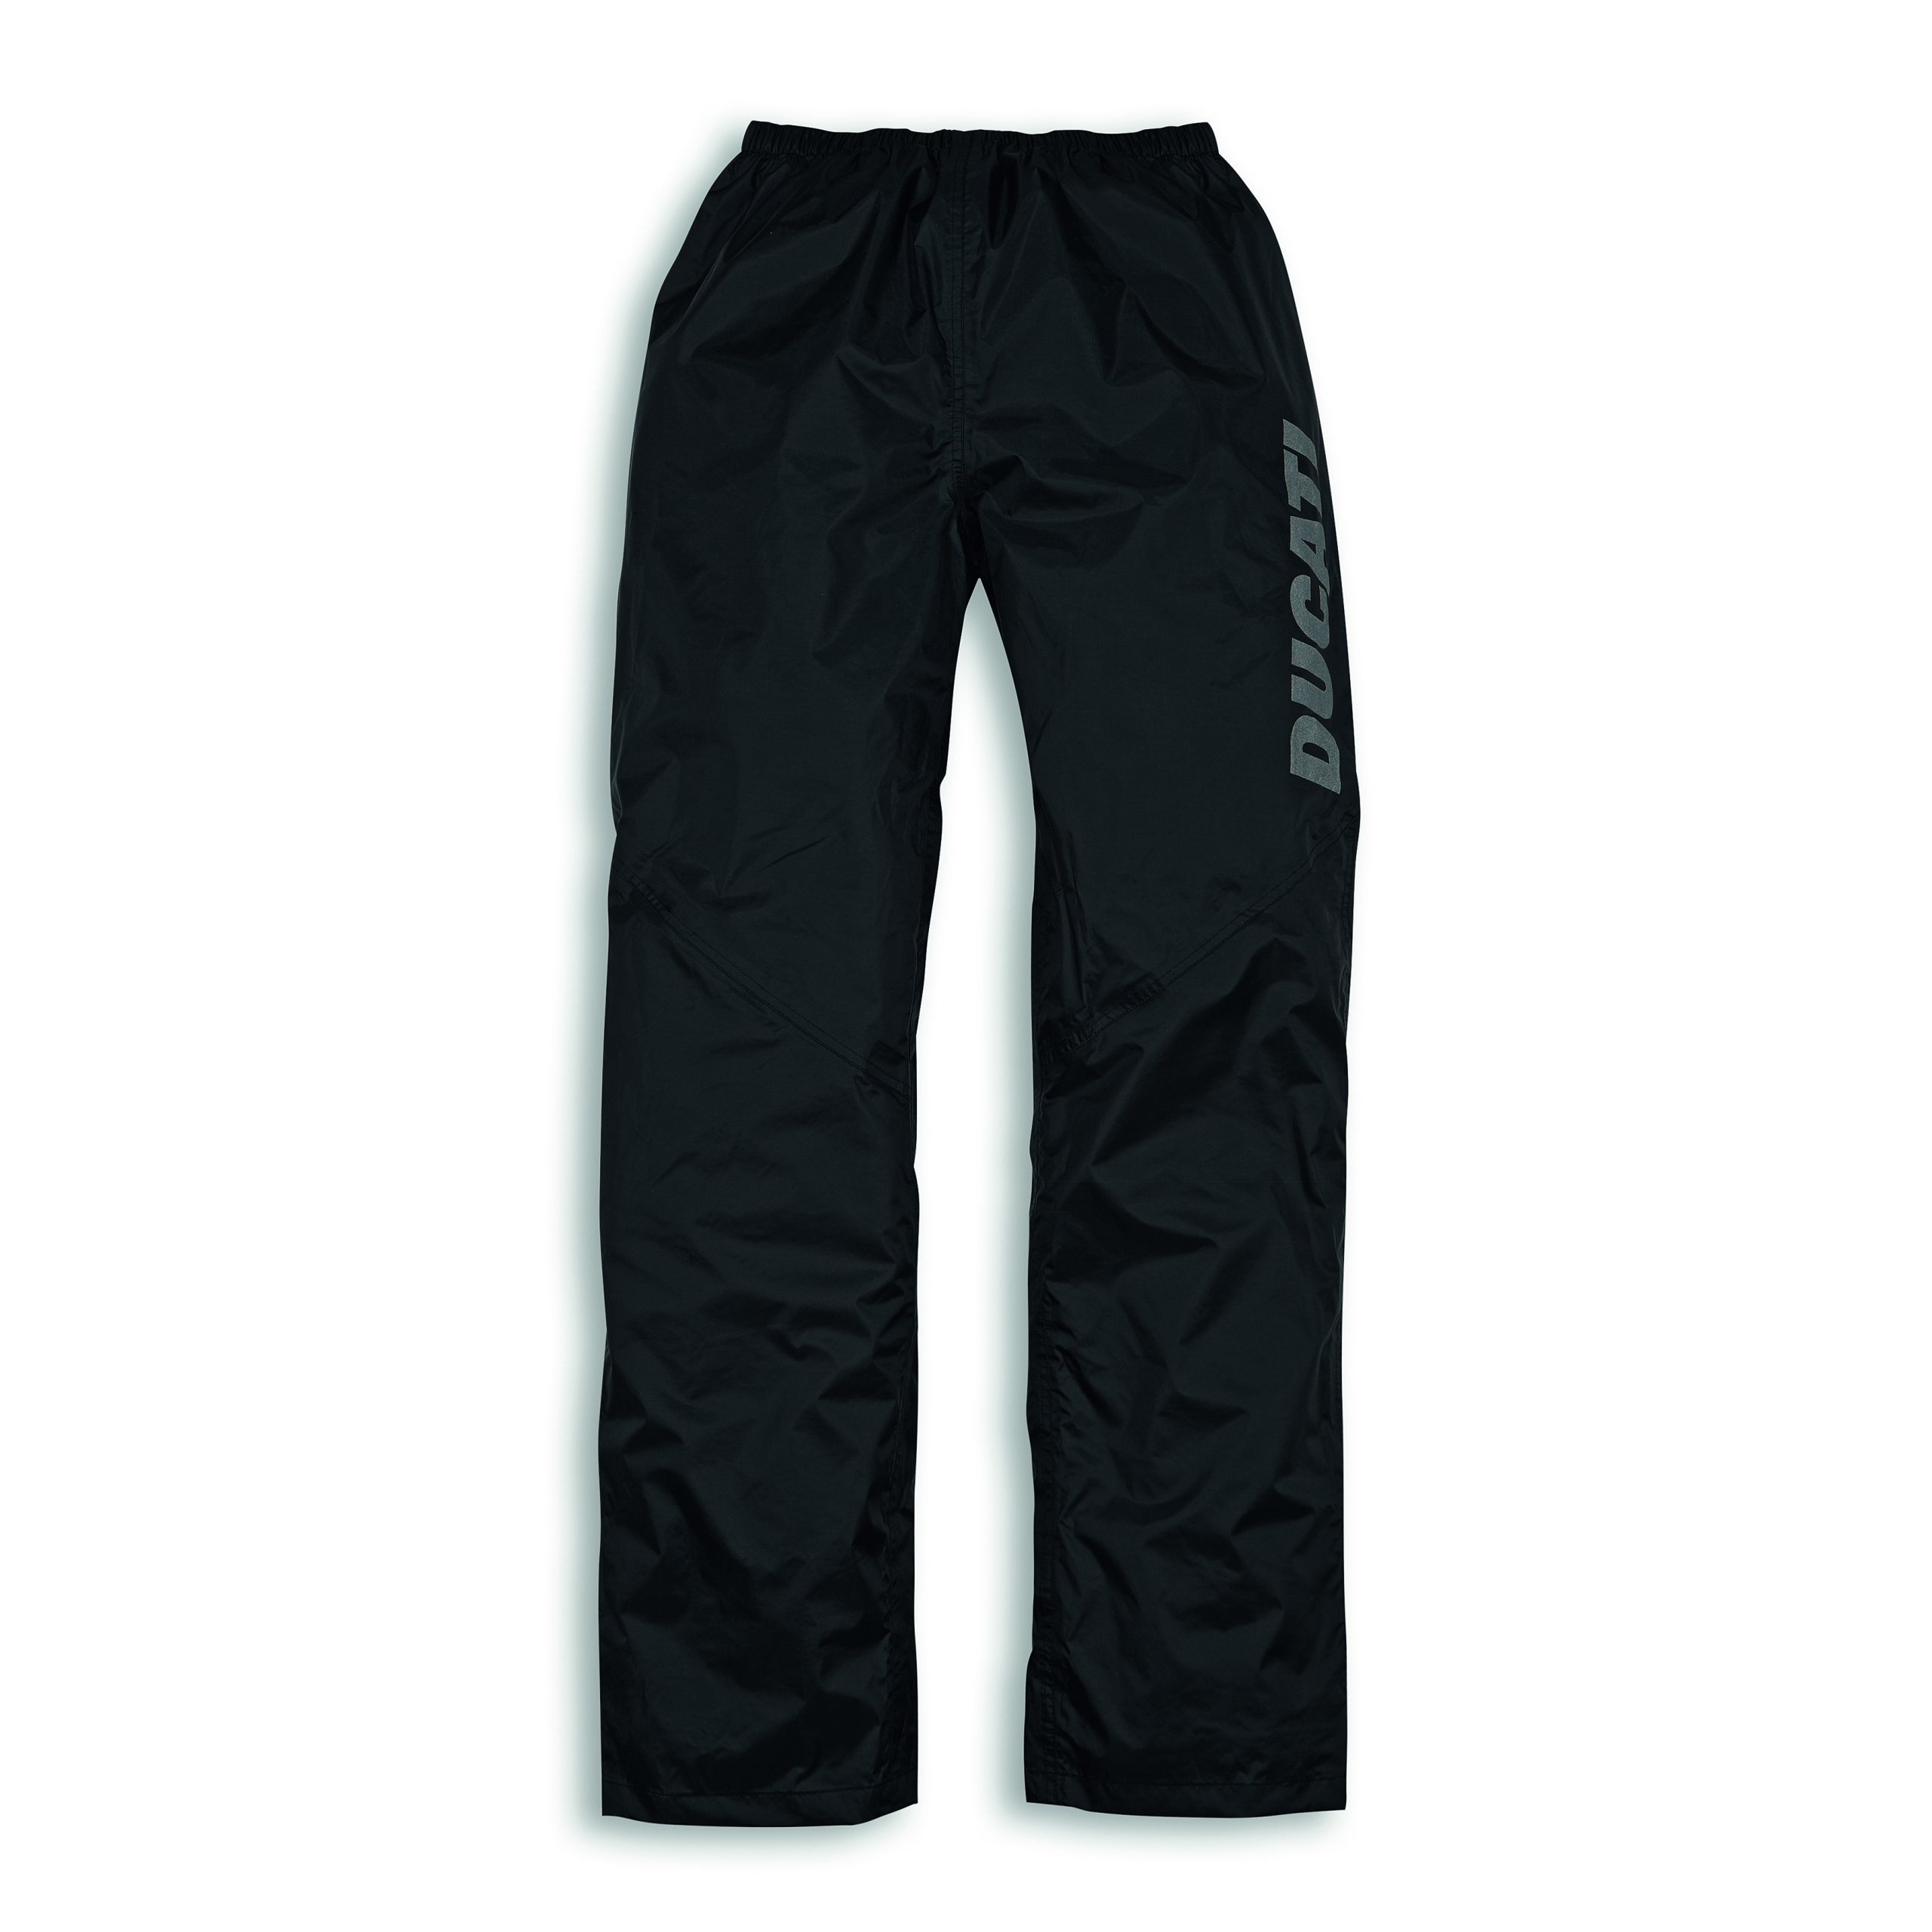 DUCATI_APPAREL_MY21_Aqua Rain Trousers_UC215269_High